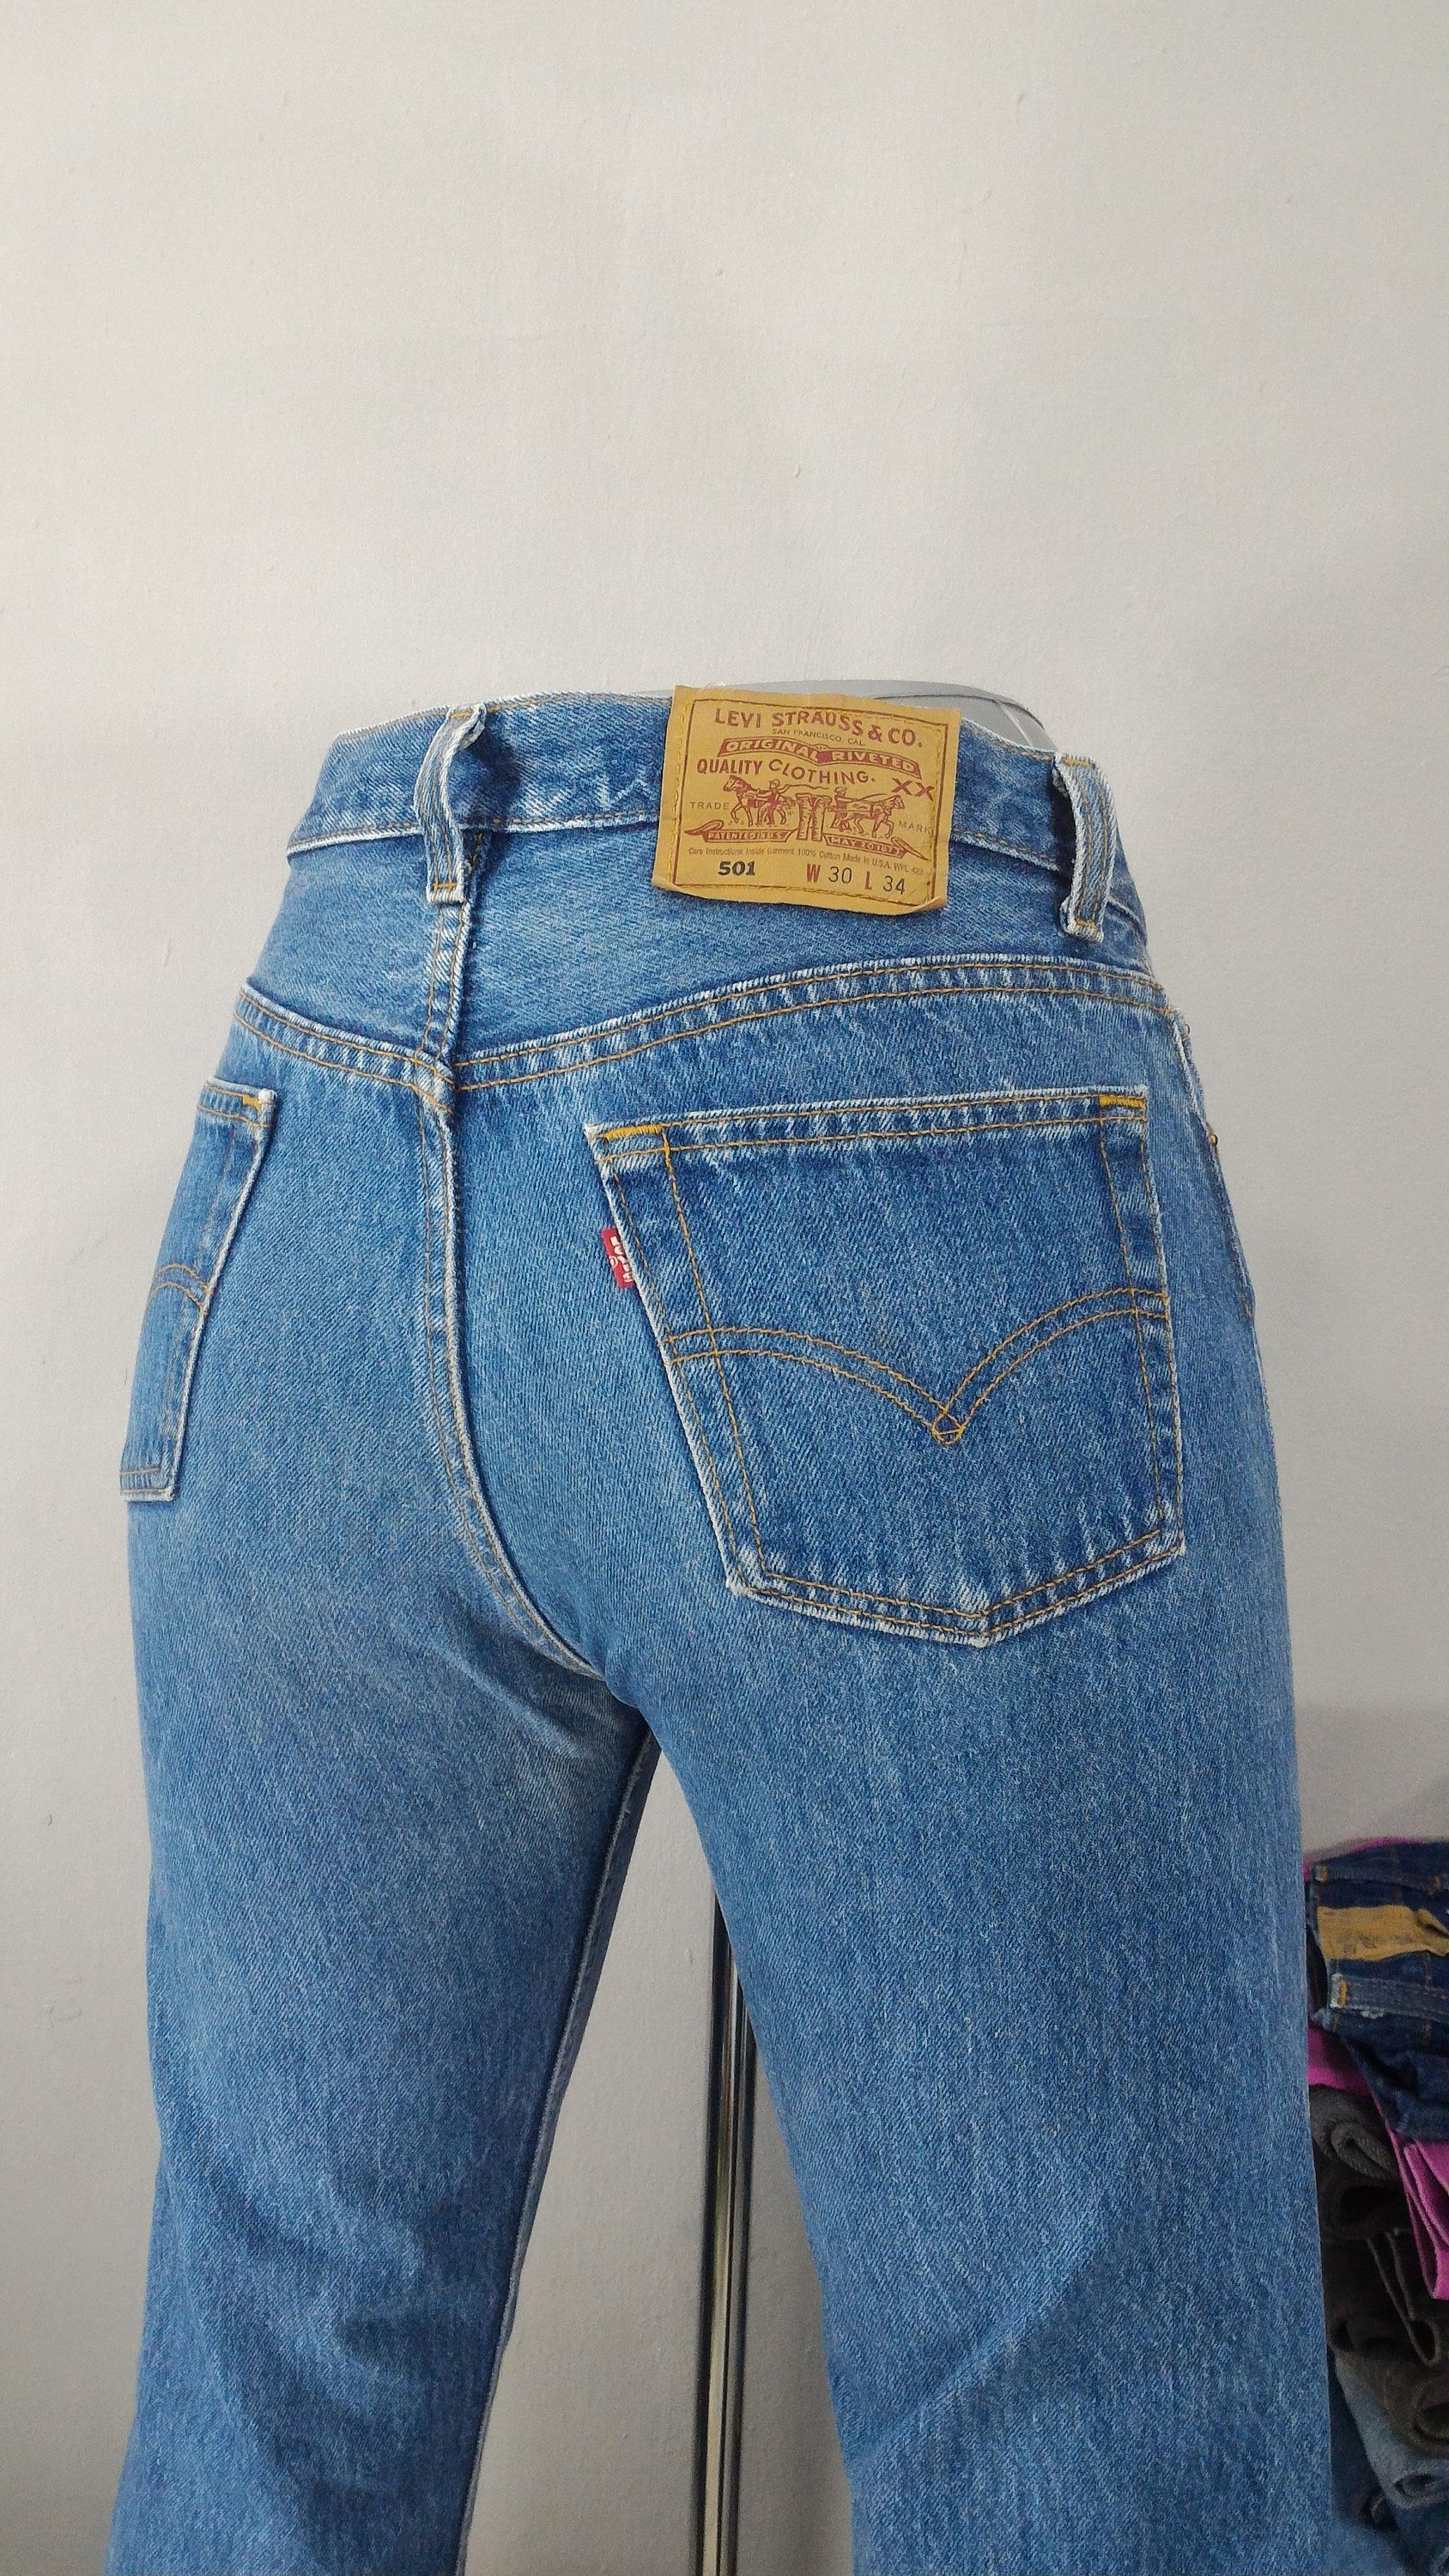 Sz 29 Vintage Levis 501 Women S Jeans W29 L26 High Waisted 90s Cropped Frayed Hem Distressed Mom Jeans Boyfriends Jeans Made In Usa Women Jeans Boyfriend Jeans Mom Jeans